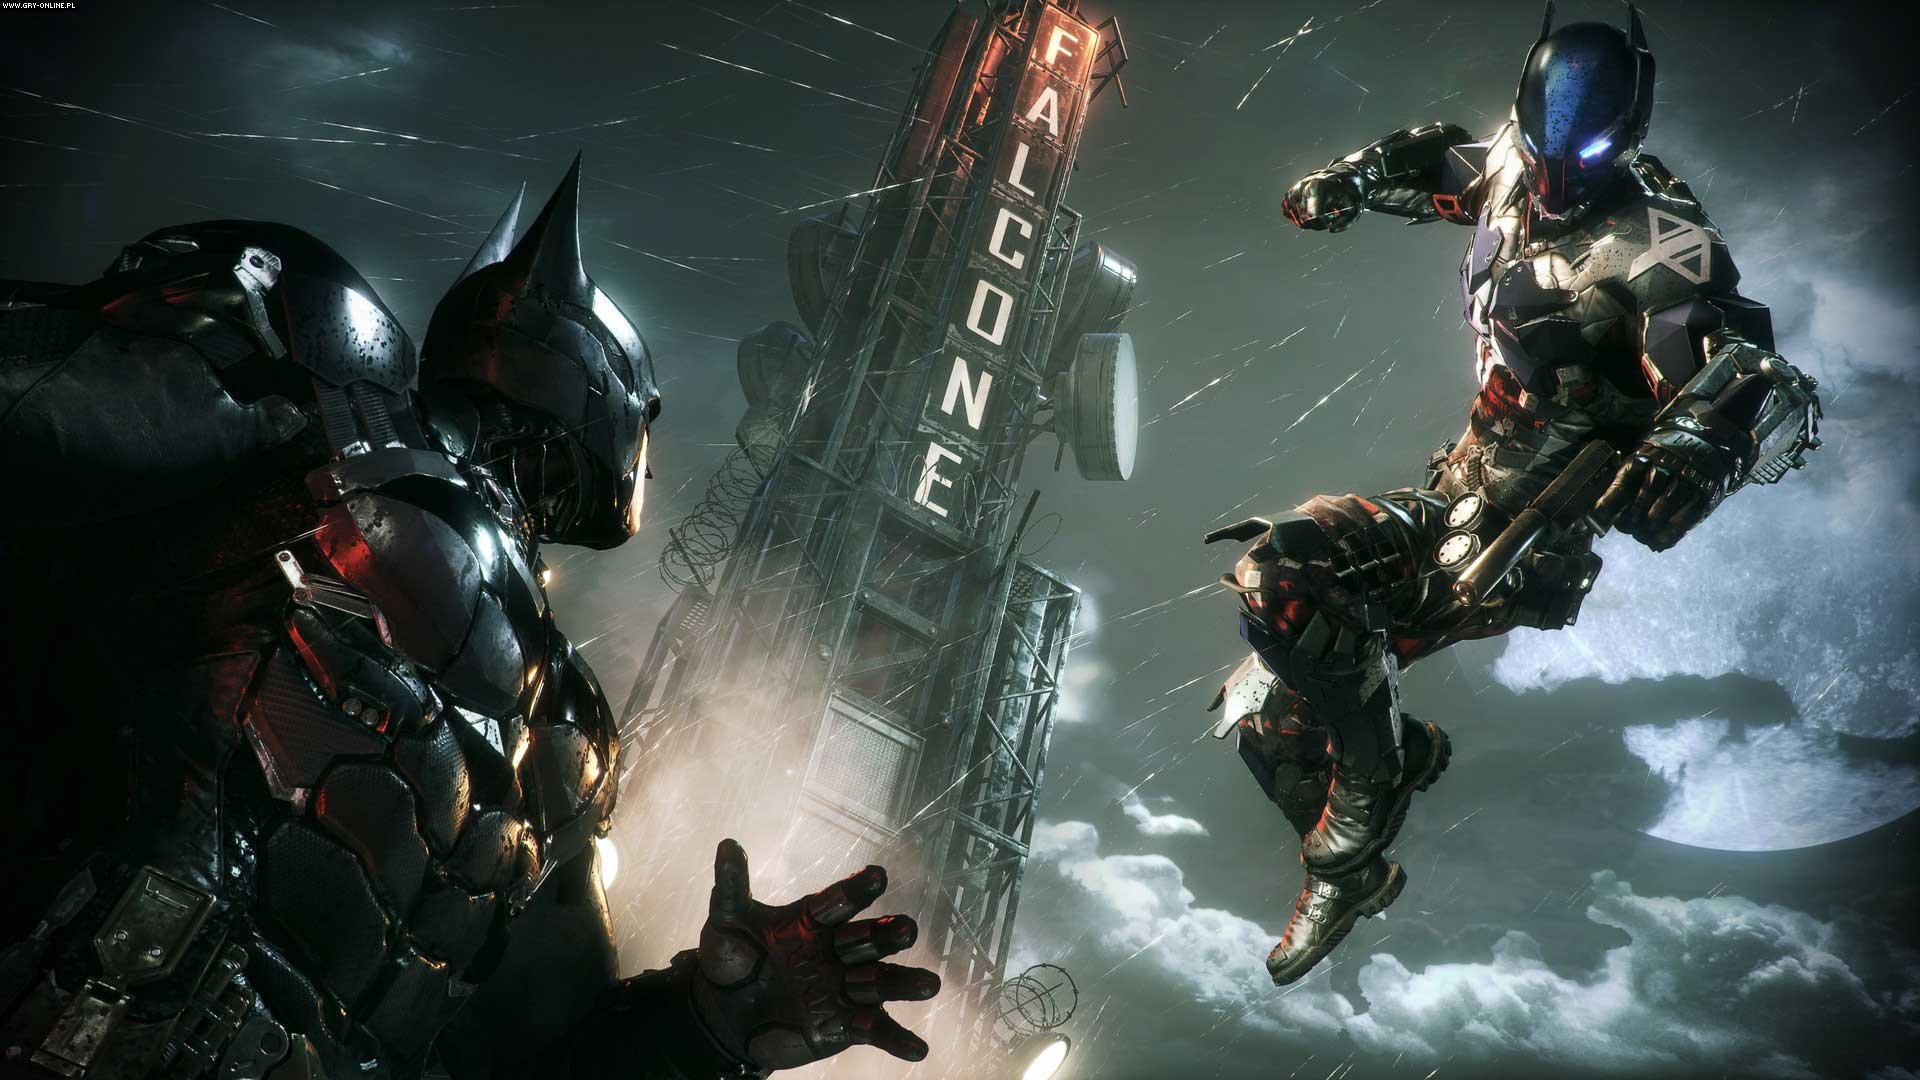 Batman: Arkham Collection PS4, XONE Games Image 1/3, Rocksteady Studios, Warner Bros. Interactive Entertainment